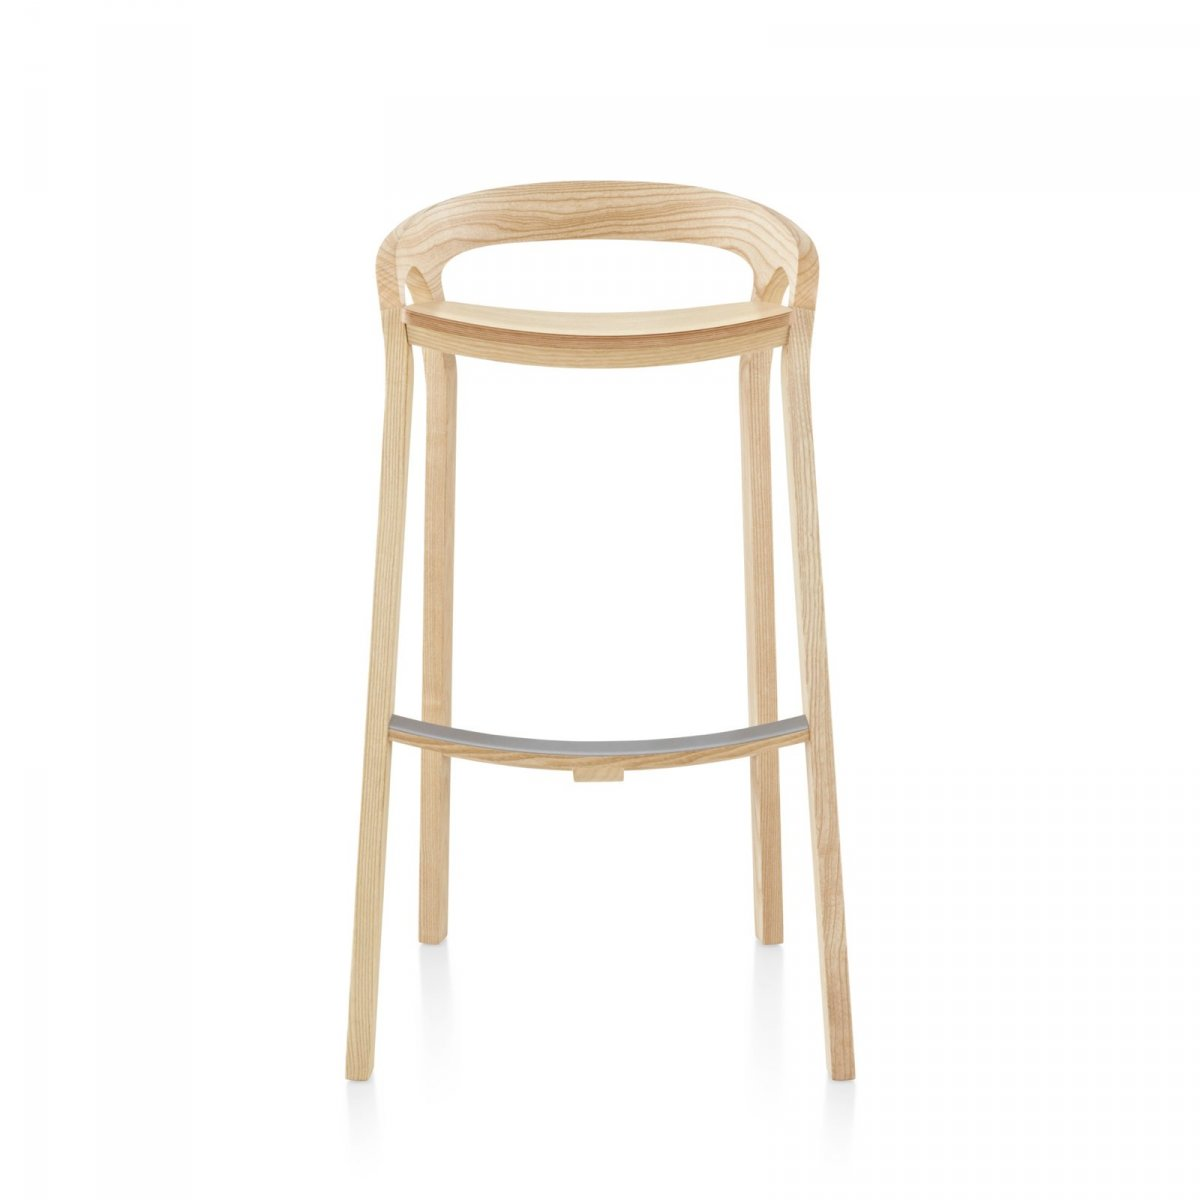 She Said Bar Stool, front view.